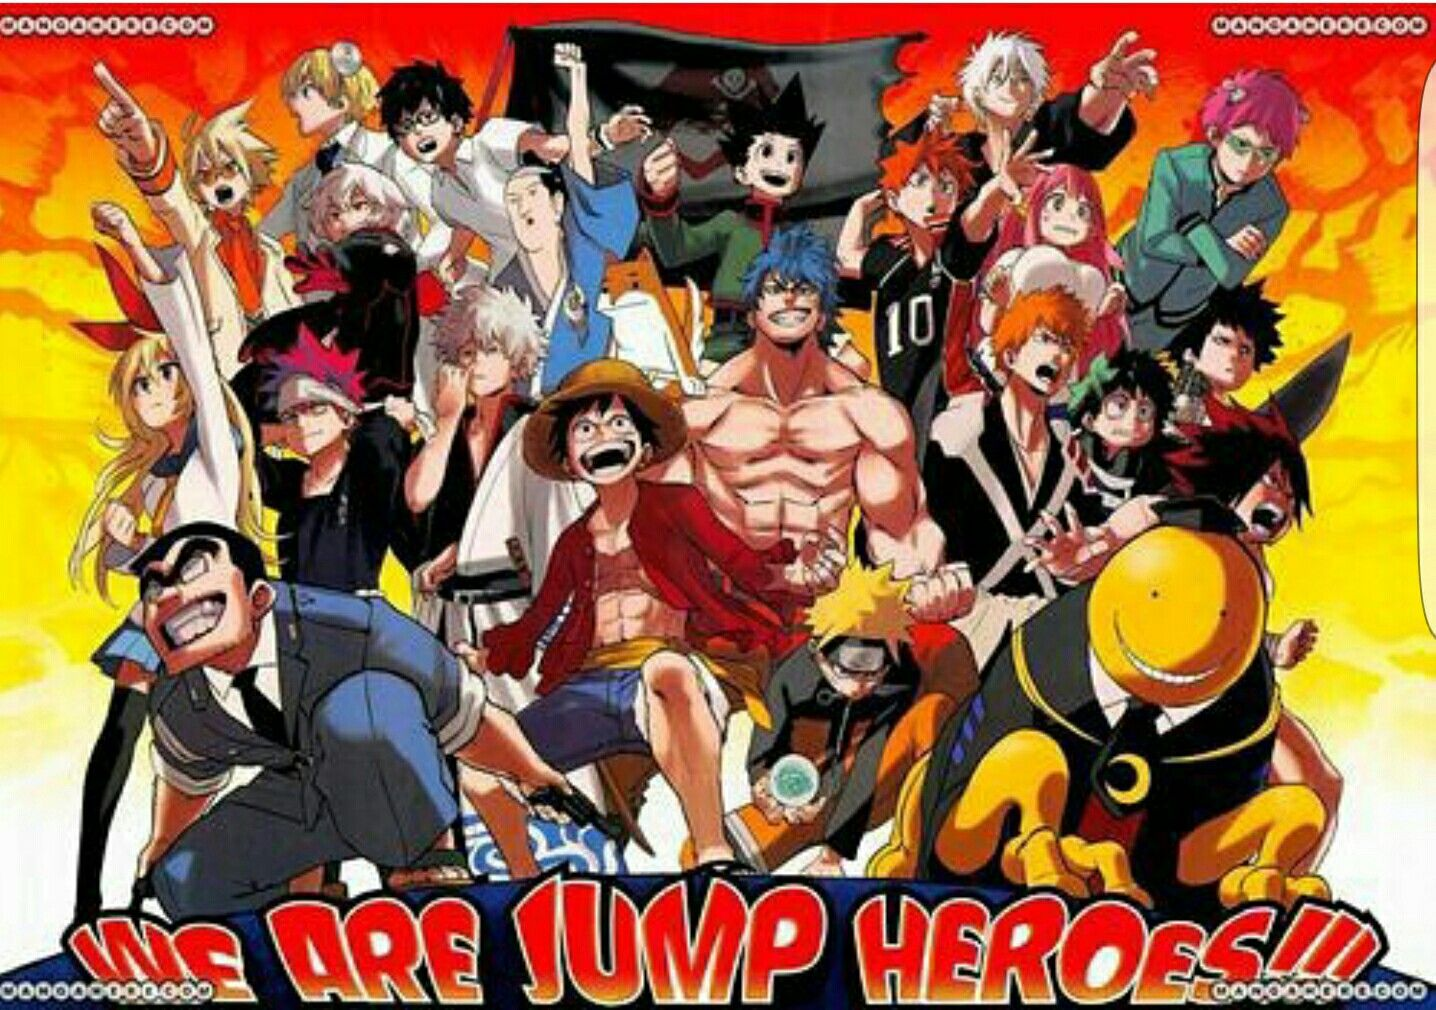 We Are Jump Heroes Text Anime Characters Crossover Anime Fusion Anime Superheroes Dibujos Wallpaper De Anime